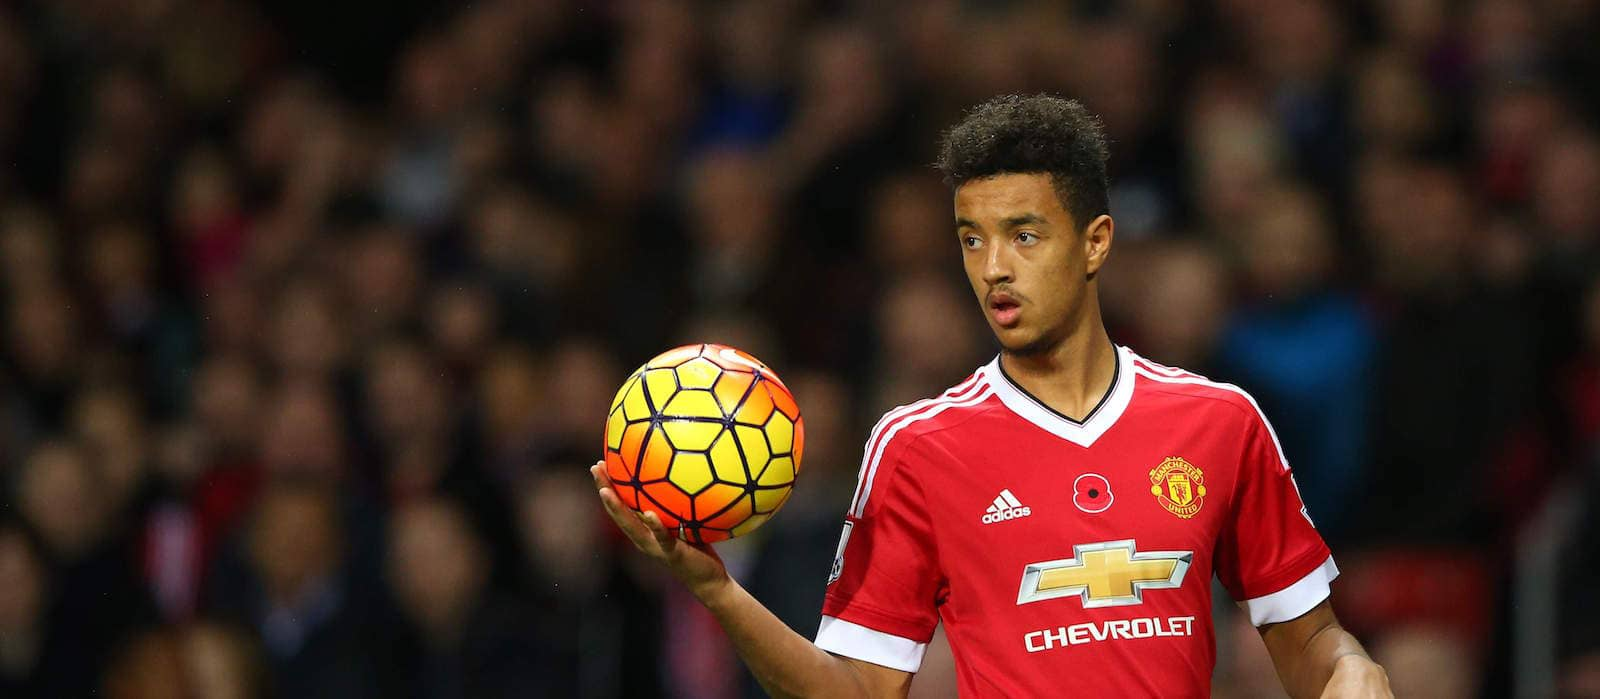 Cameron Borthwick-Jackson set for one-year loan at Scunthorpe United – report